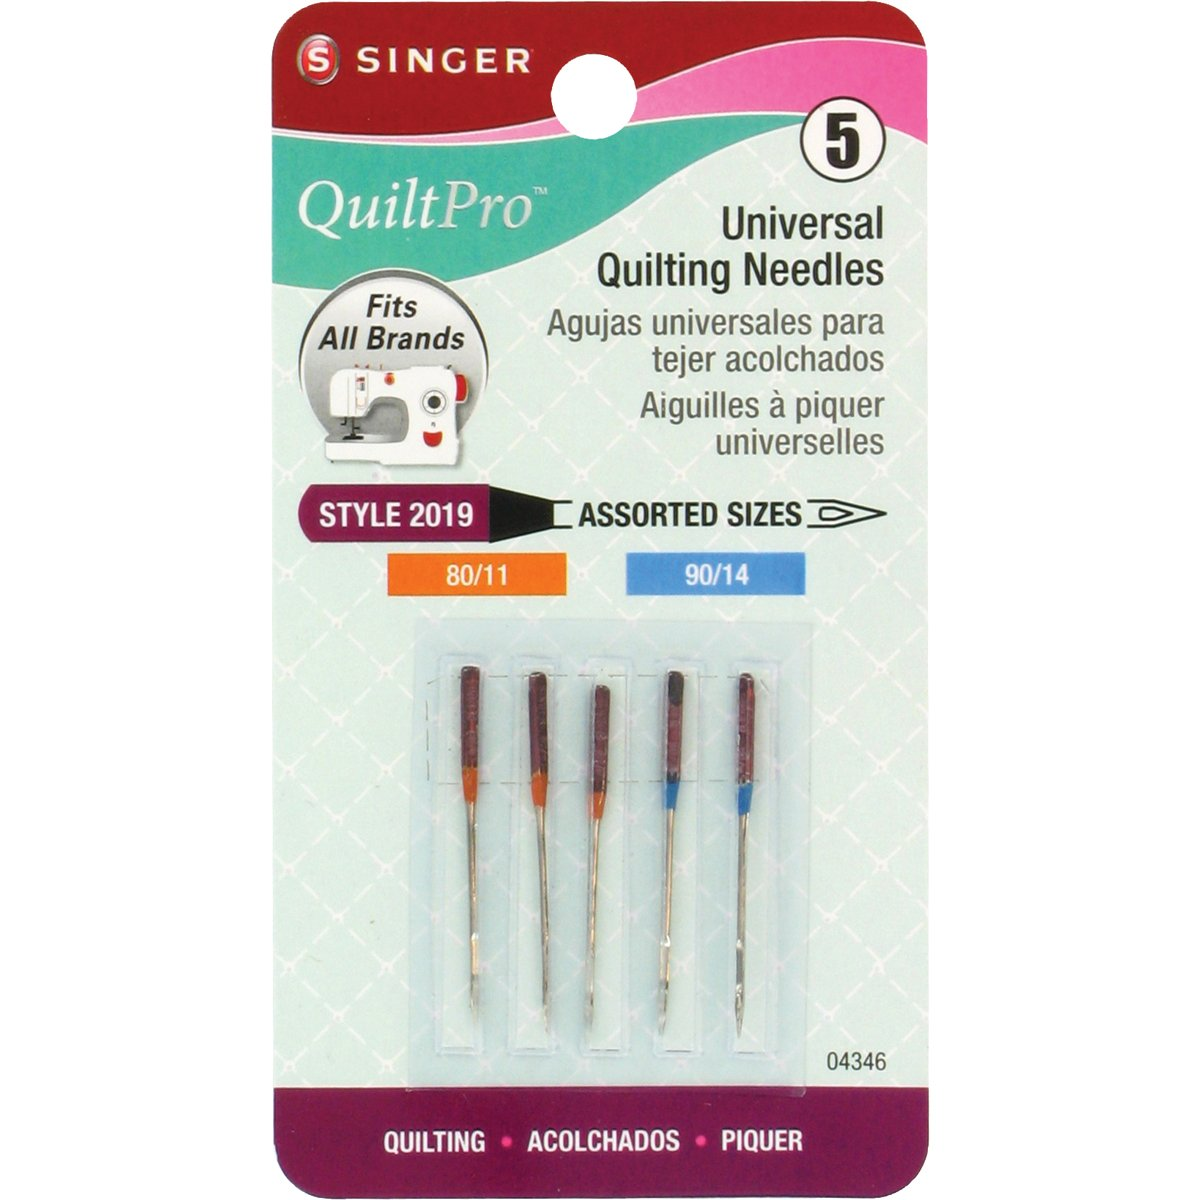 QuiltPro Universal Quilting Needles-Sizes 80/11 (3) & 90/14 (2) 5/Pkg Singer 27101002